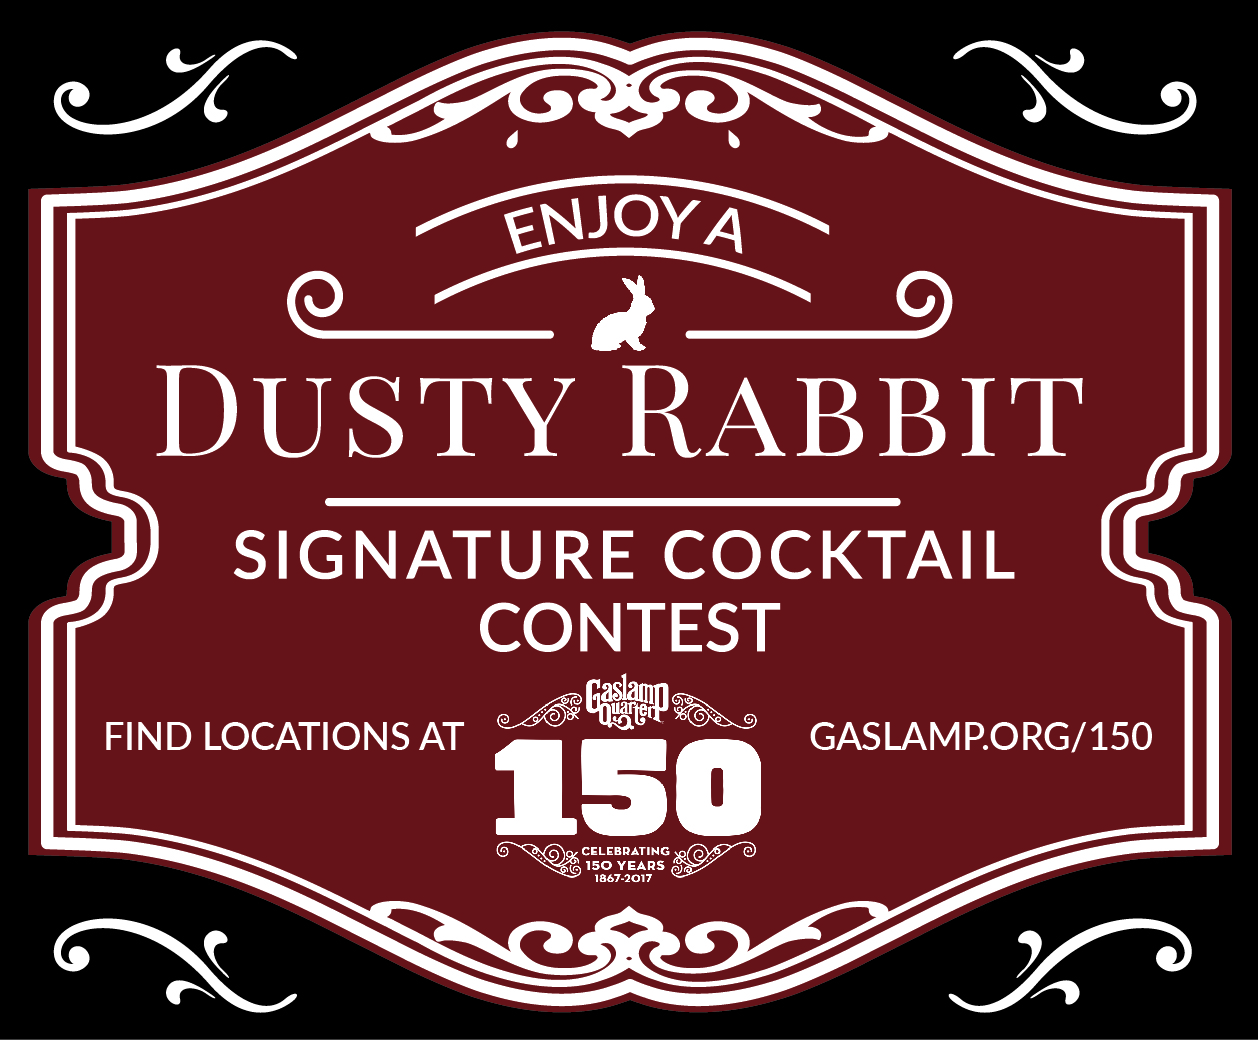 Dusty Rabbit cocktail competition